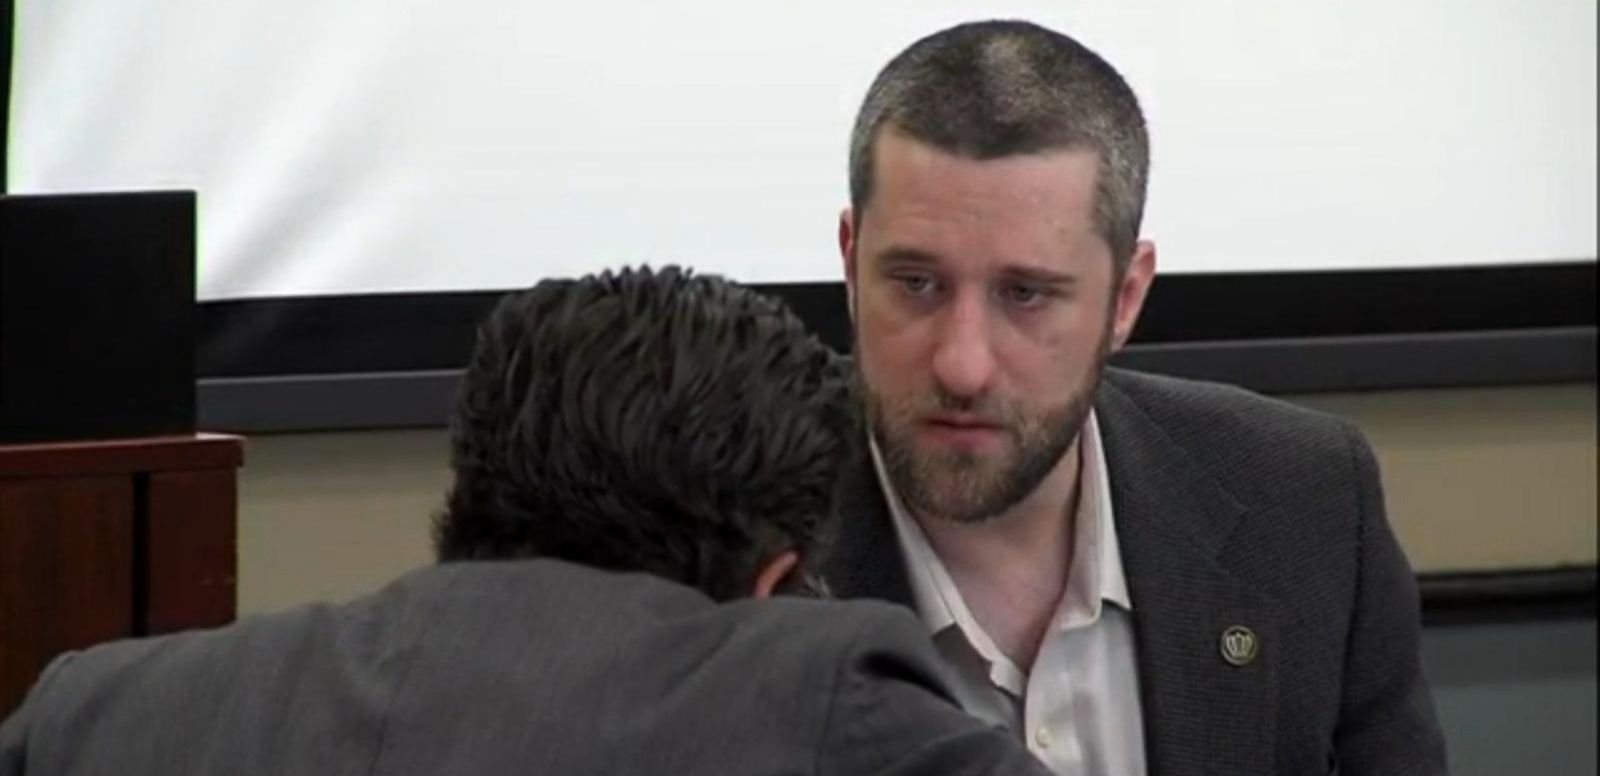 VIDEO: Dustin Diamond Appears in Court Facing Stabbing Charges